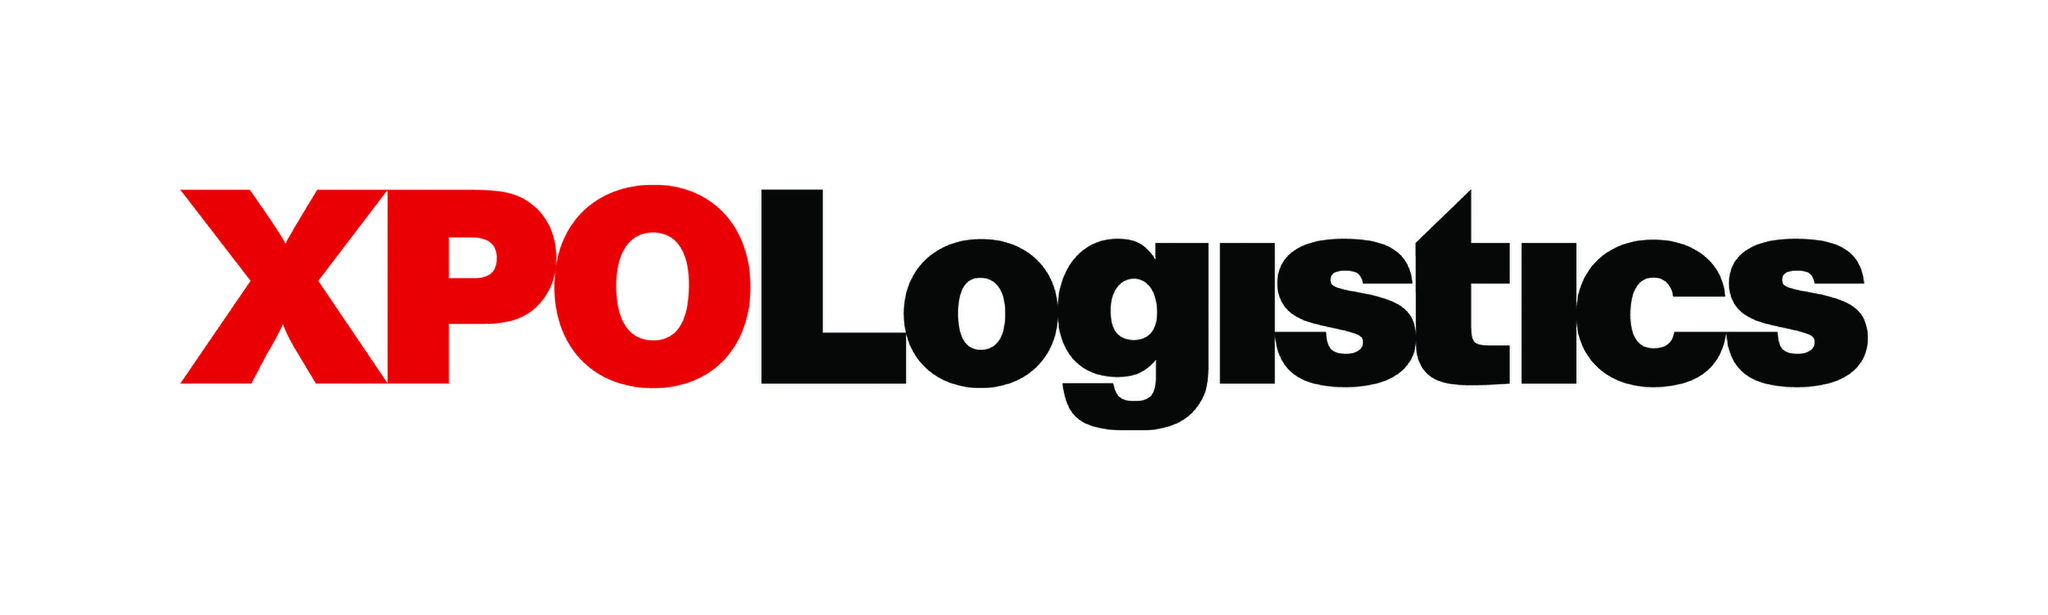 XPO Logistics Limited